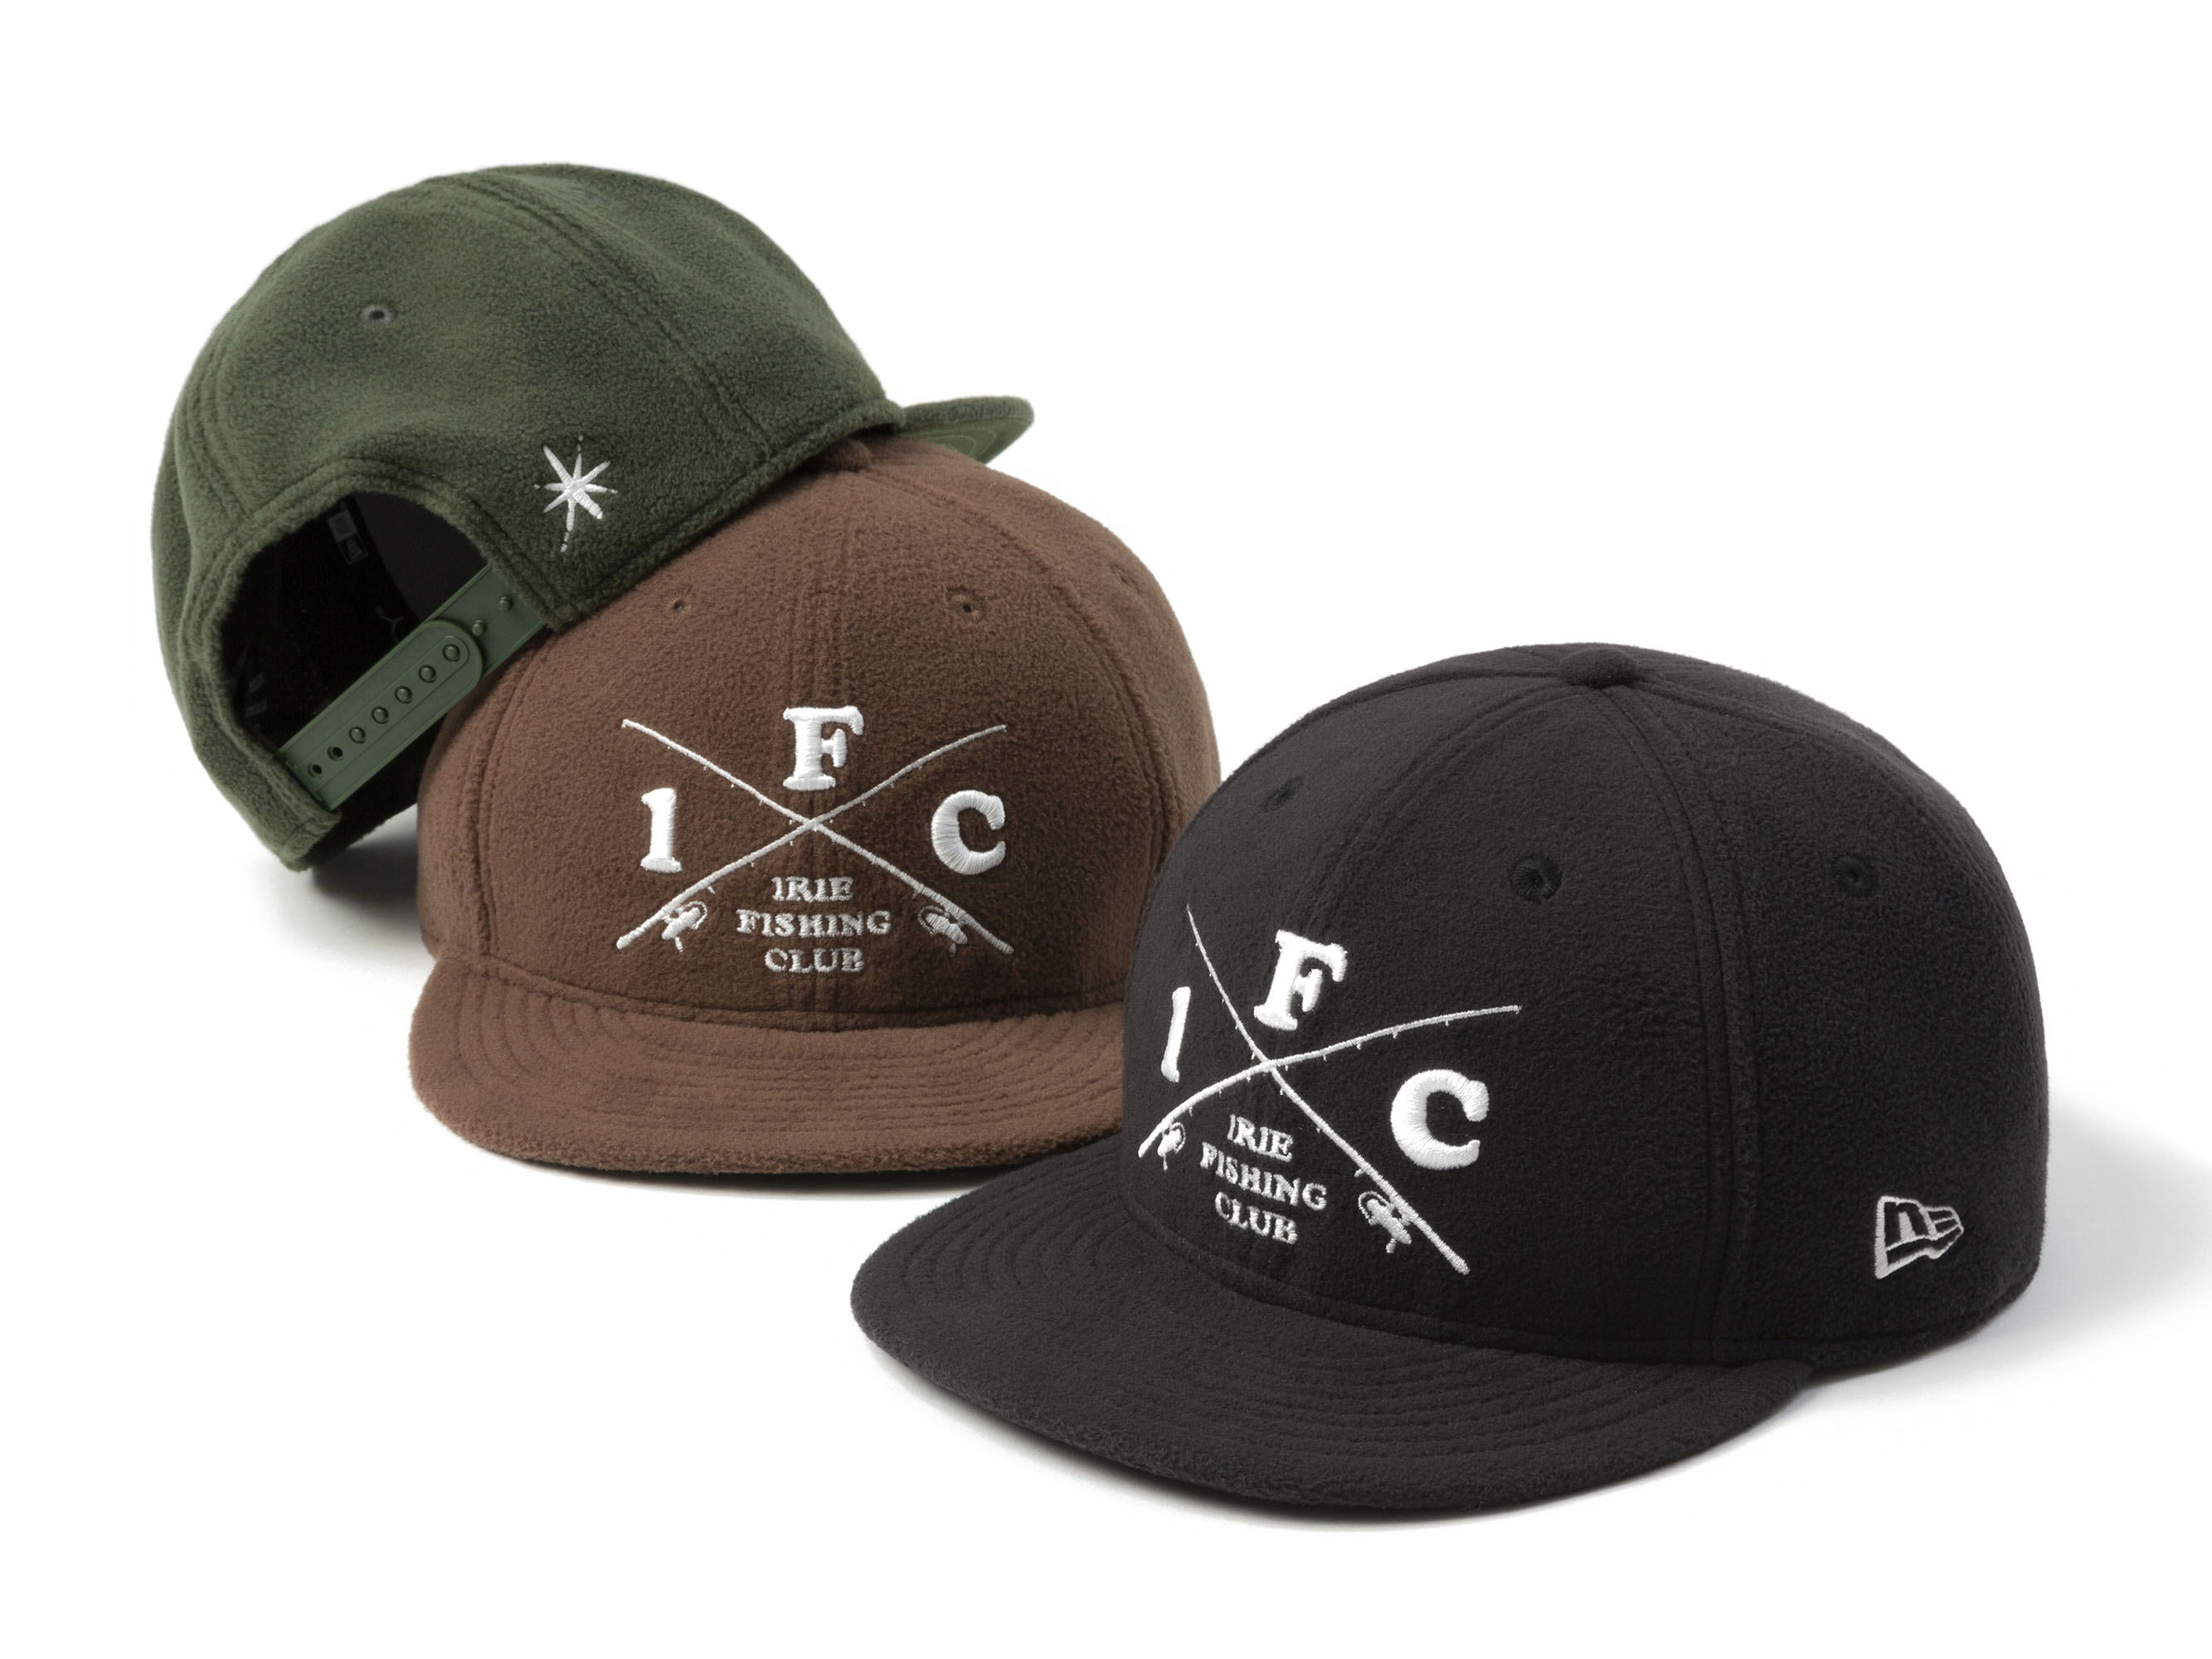 ×NEW ERA 9FIFTY CROSS ROD MICRO FLEECE CAP - IRIE FISHING CLUB